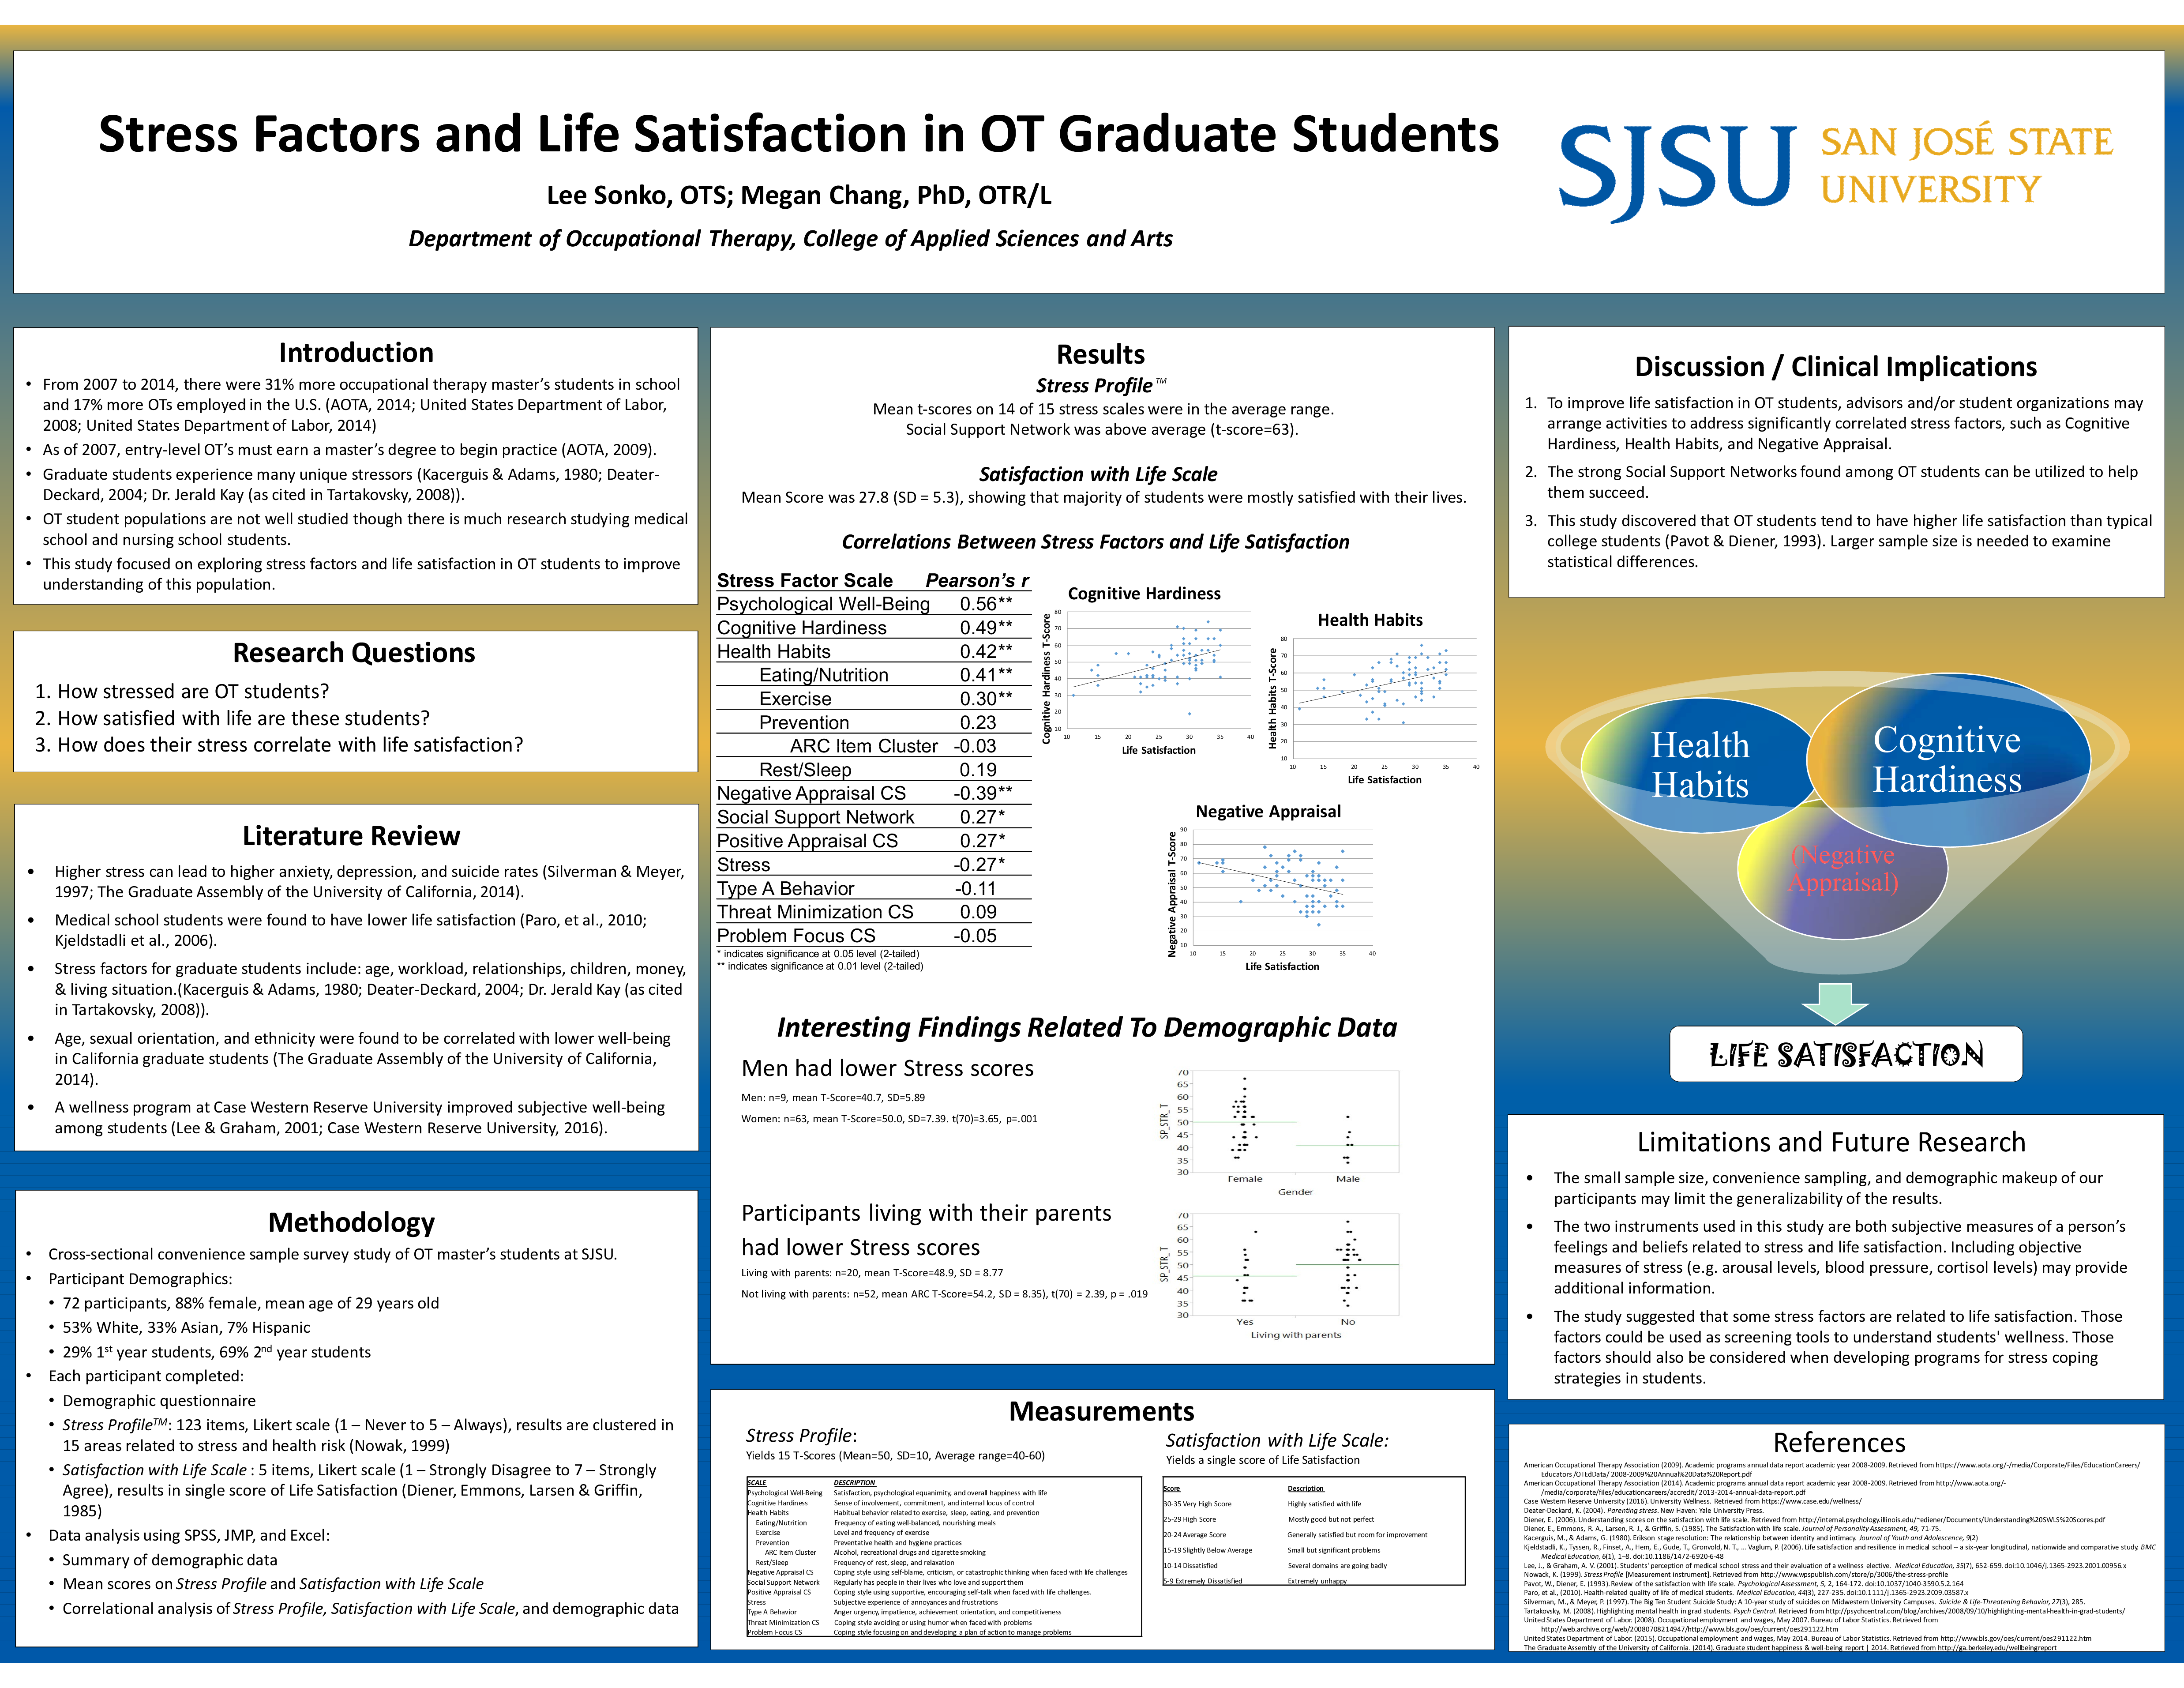 measuring student satisfaction with their studies